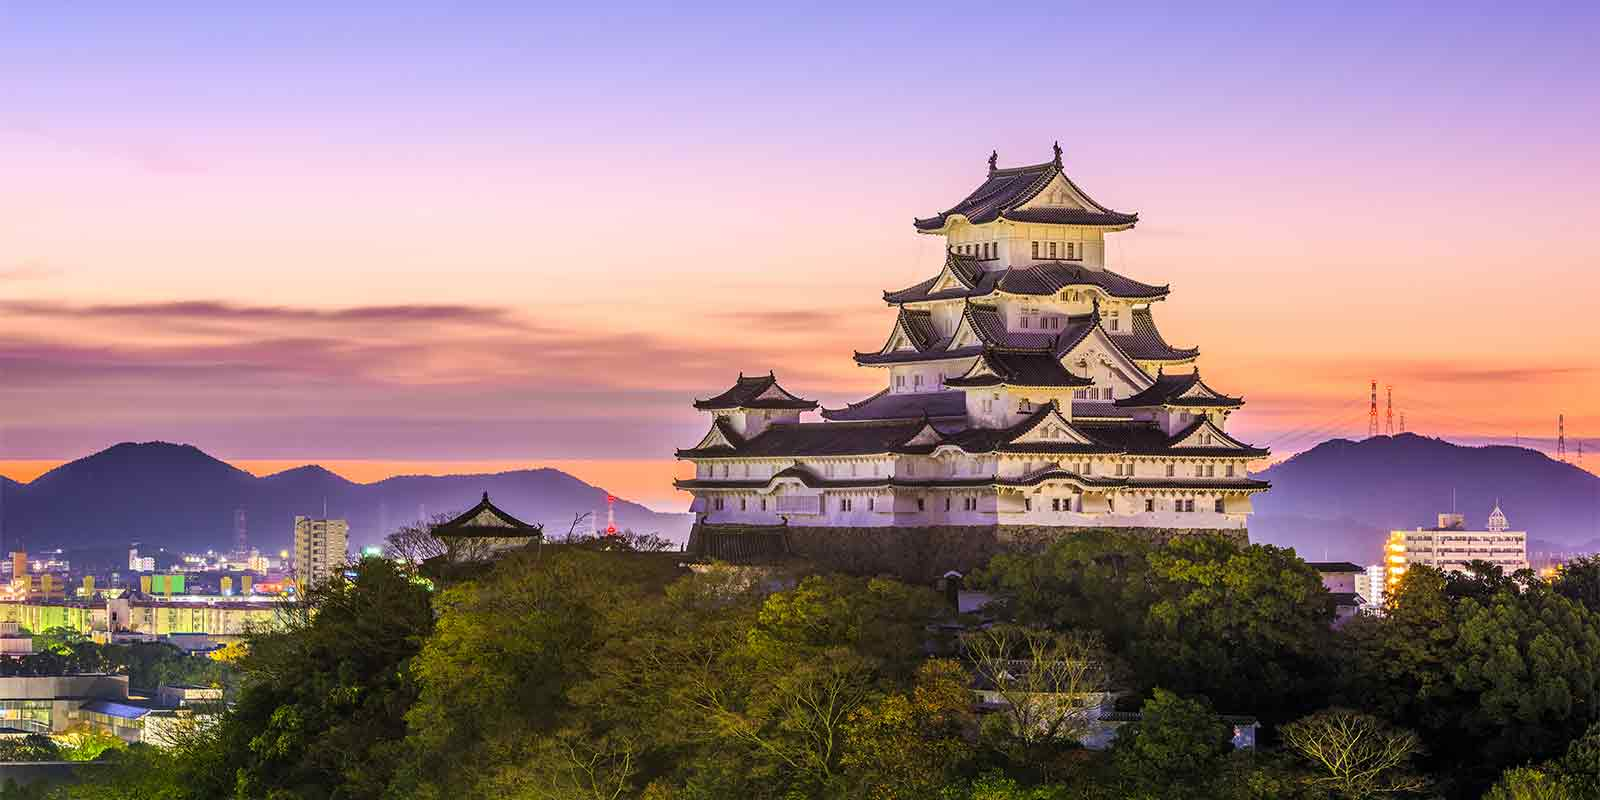 Himji hilltop castle at sunrise in Japan